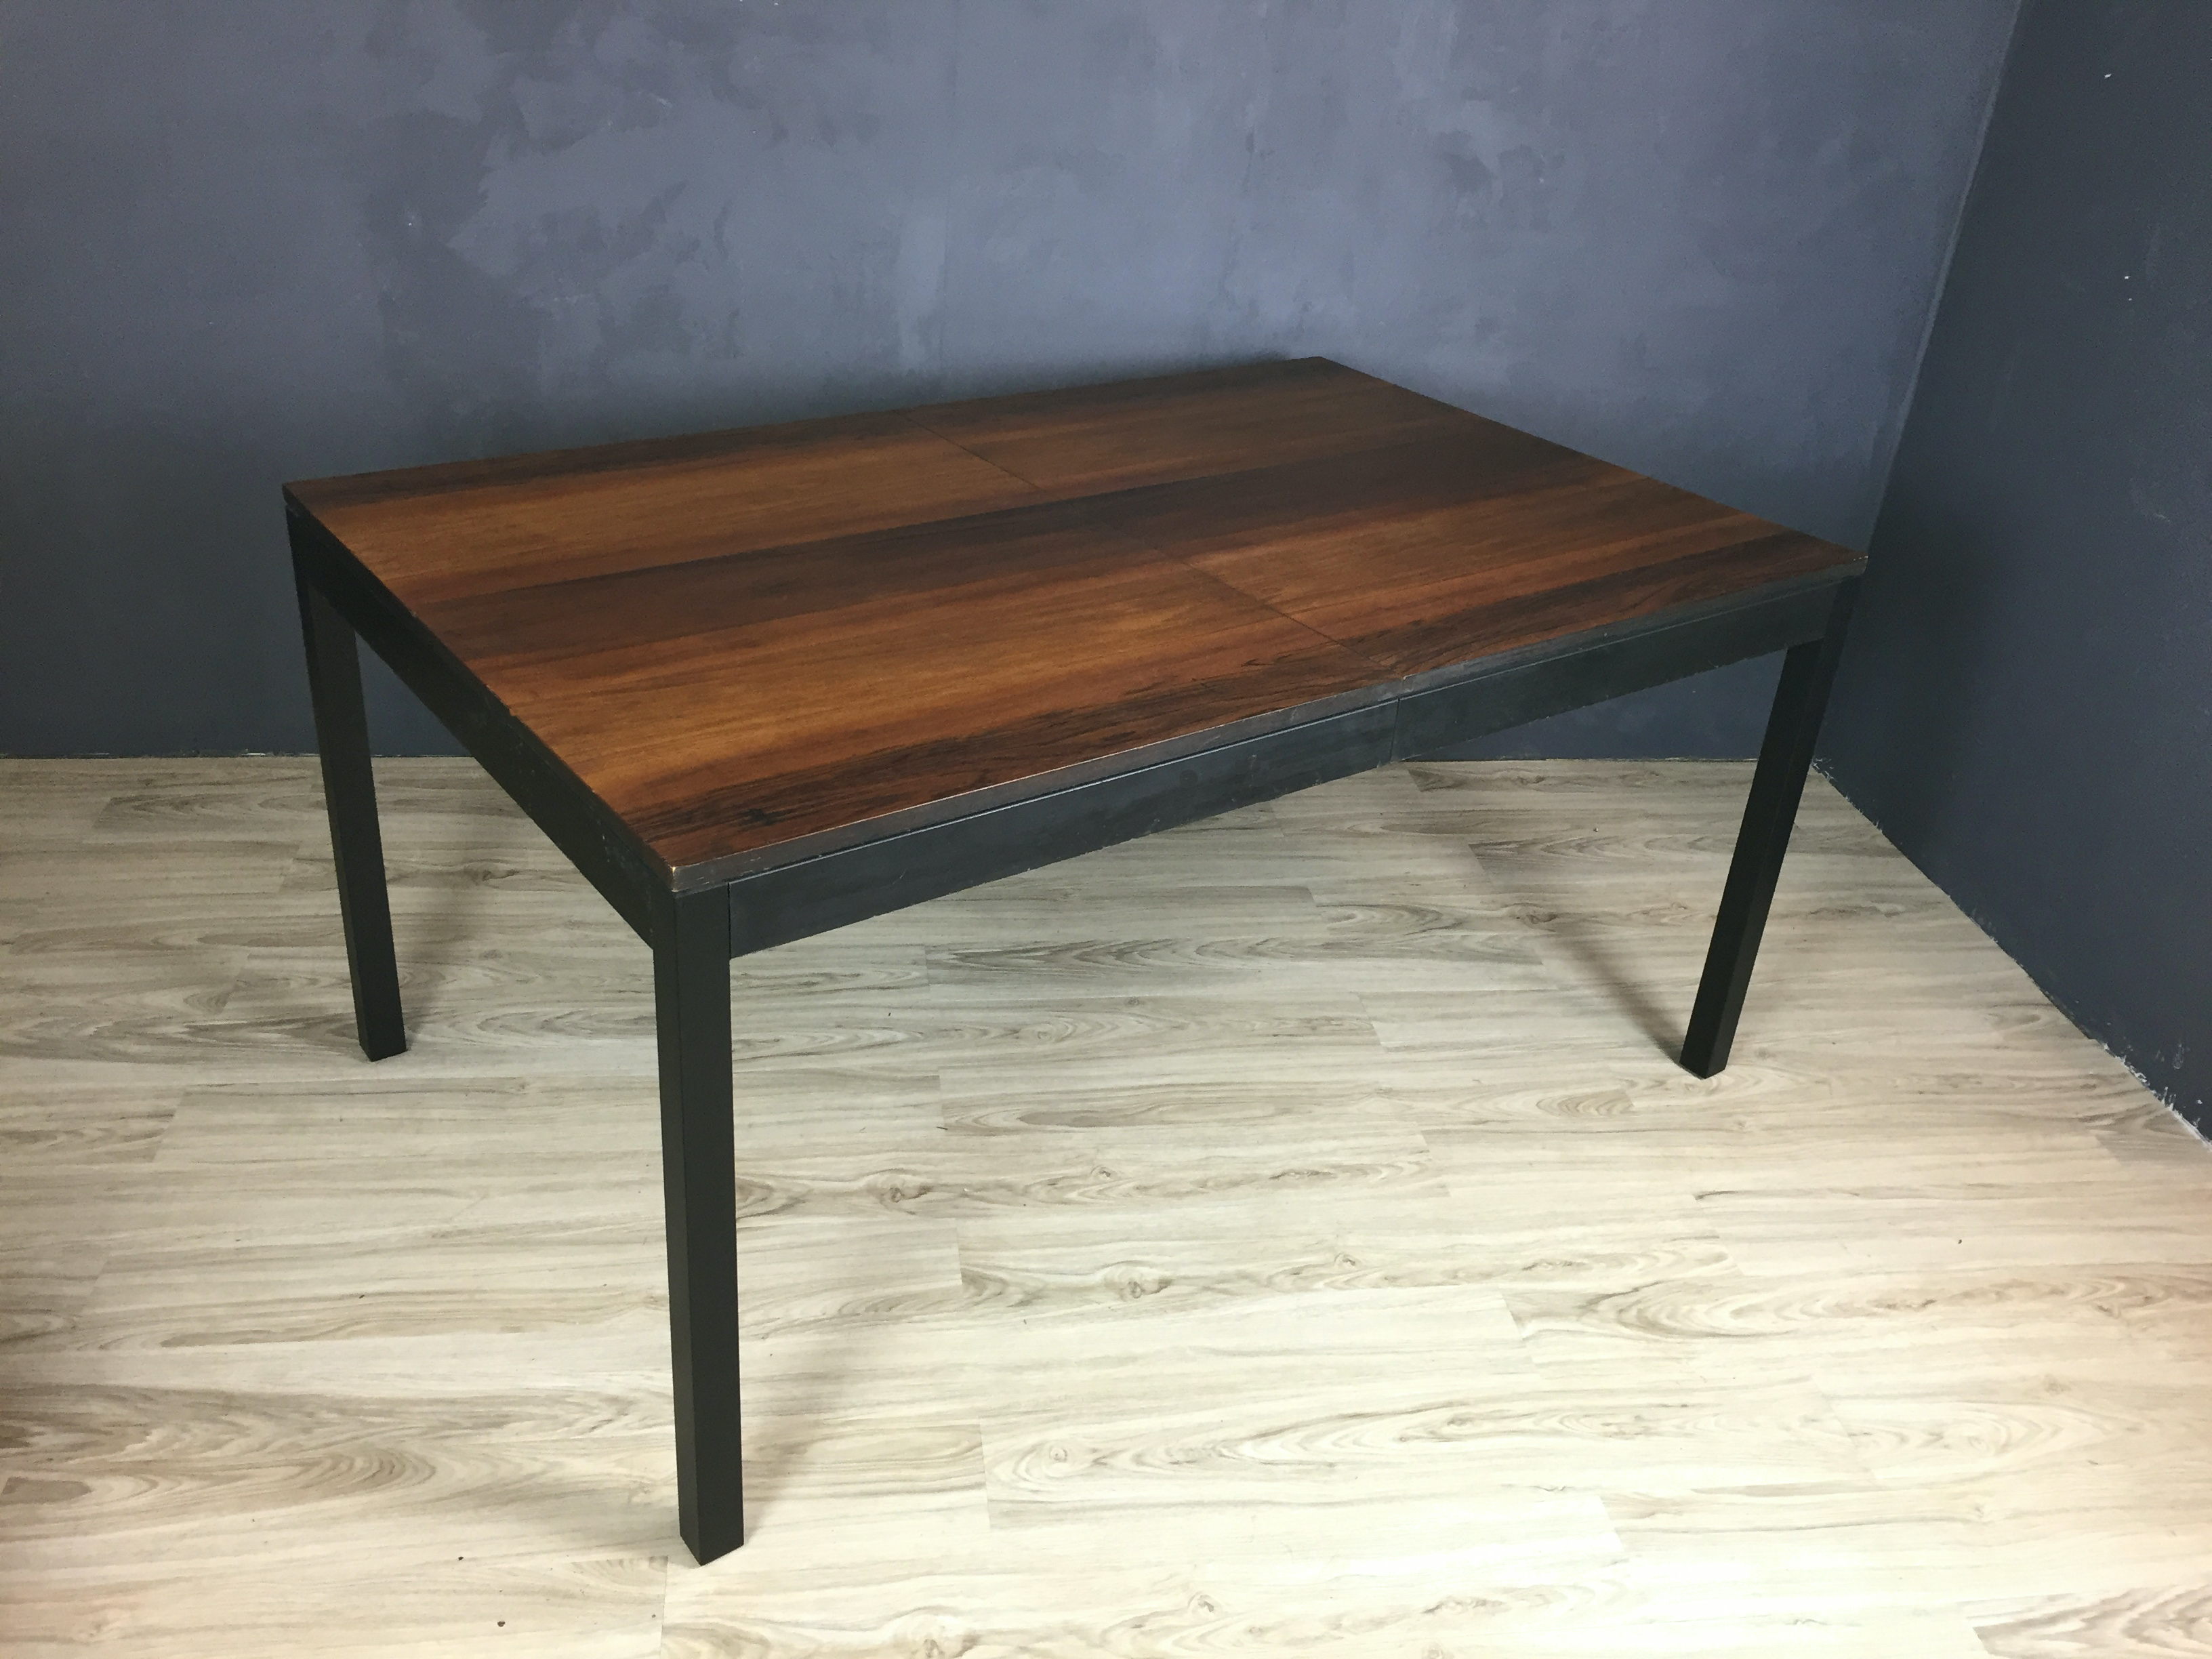 SALE - Milo Baughman Multi Wood Parsons Table